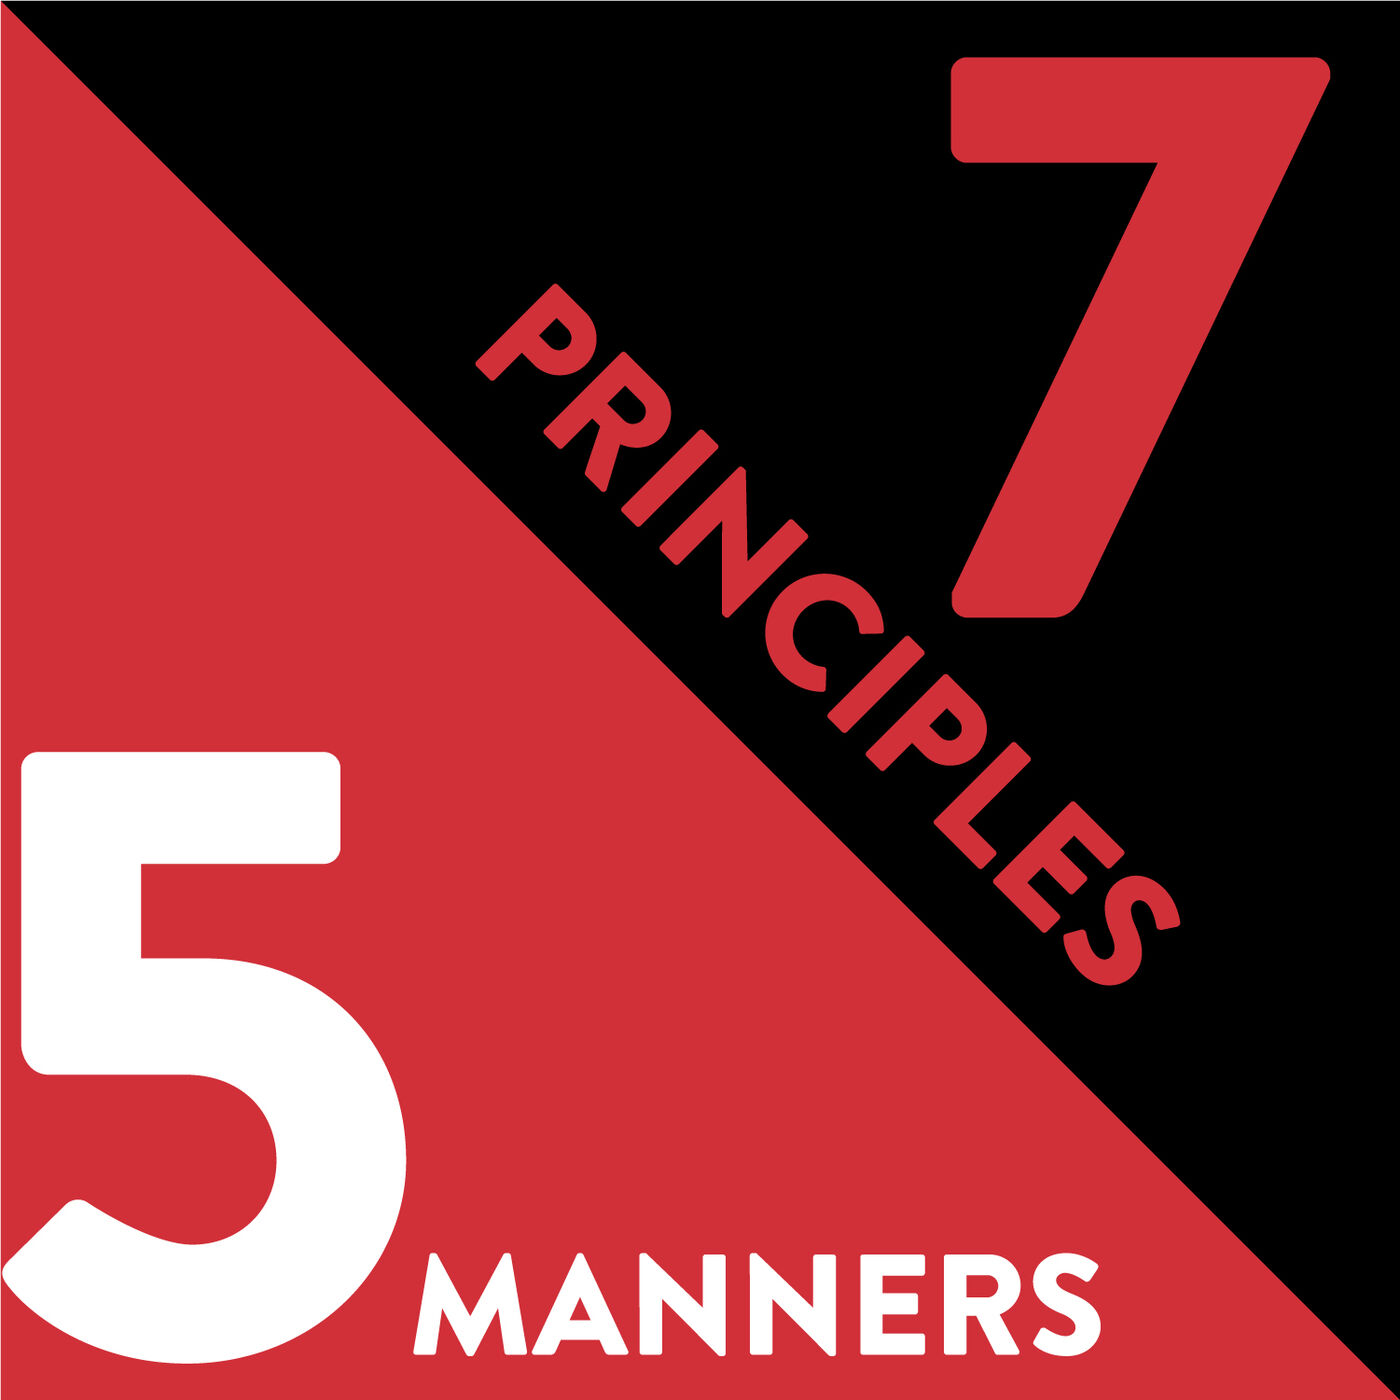 Manners: The Fifth Principle of Relationship Management